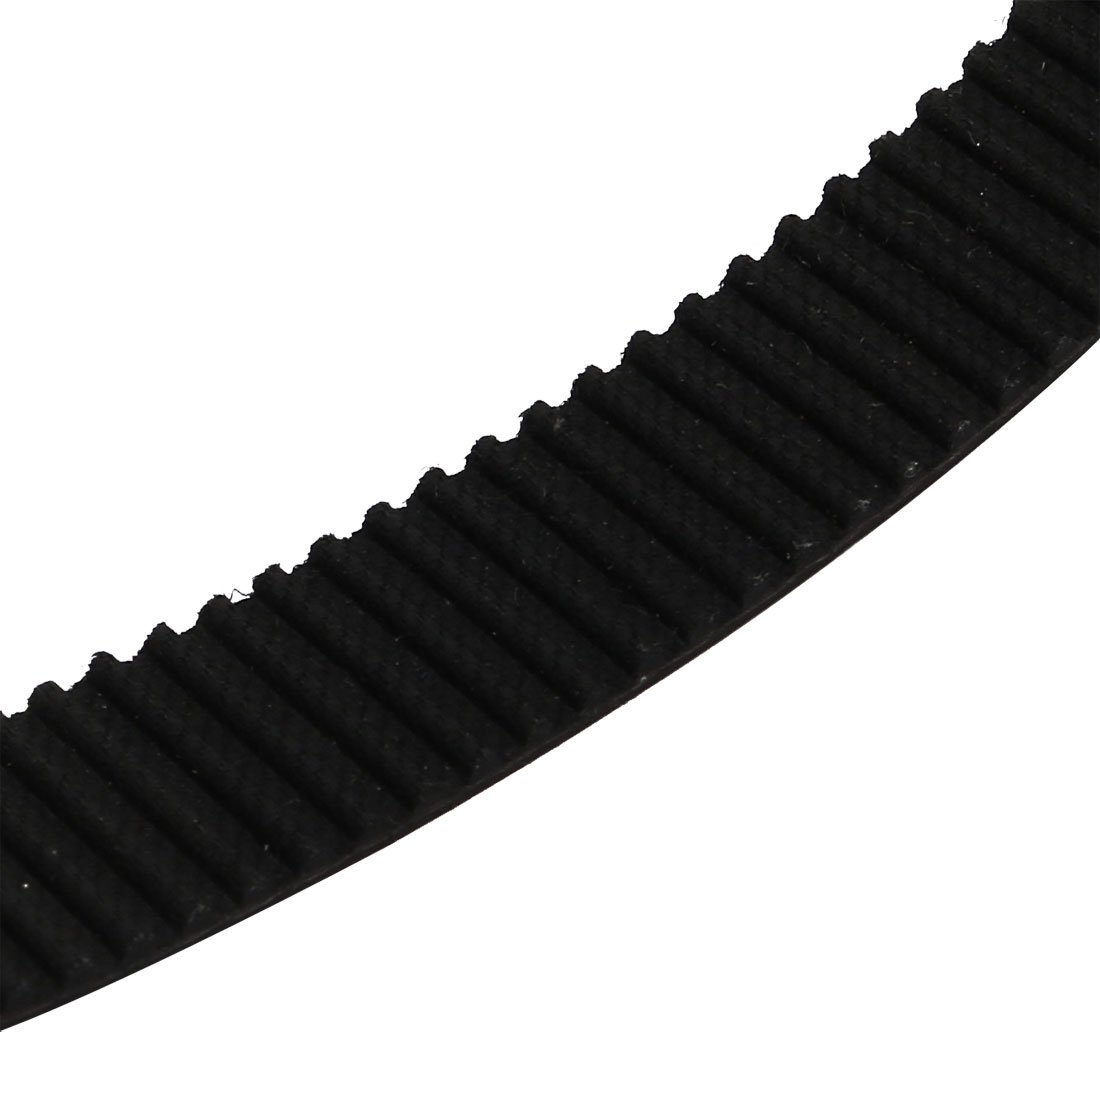 uxcell HTD3M348 Rubber Timing Belt Synchronous Closed Loop Timing Belt Pulleys 10mm Width